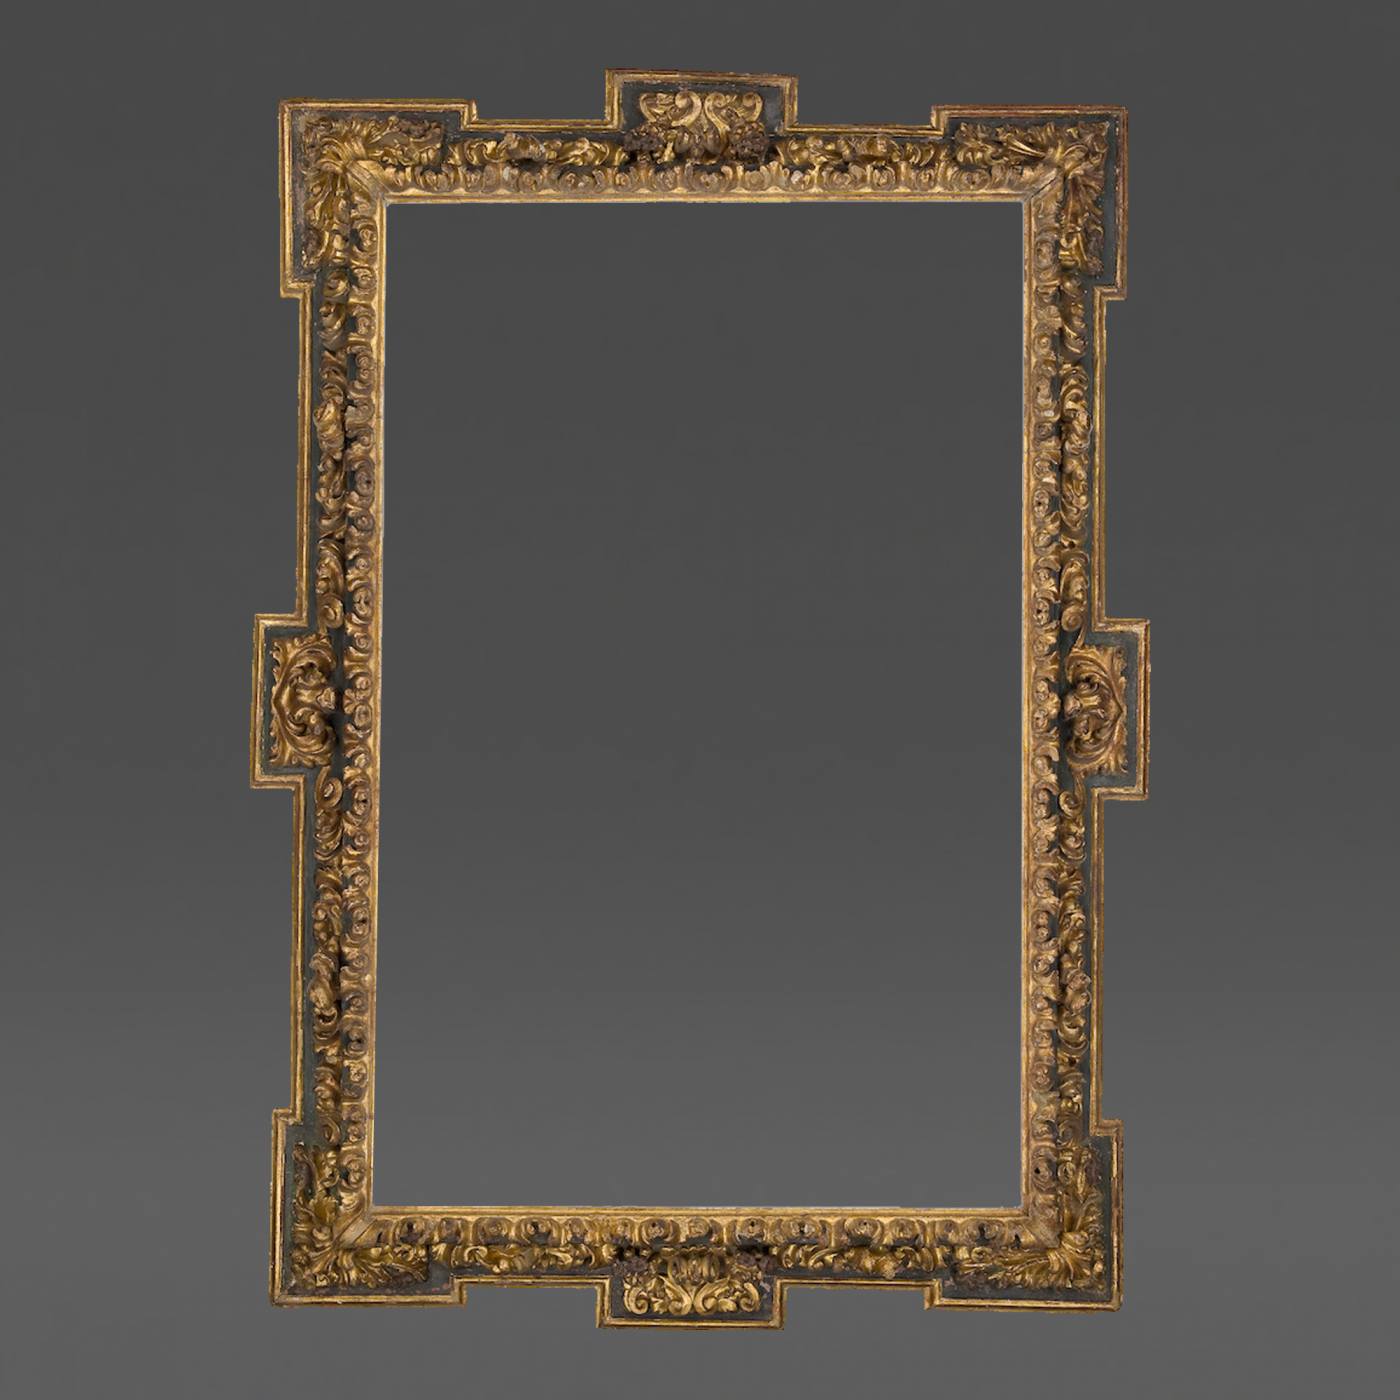 Eyeglasses Frame In Spanish : 17th Century Spanish Receding Frame with Corners and Centers